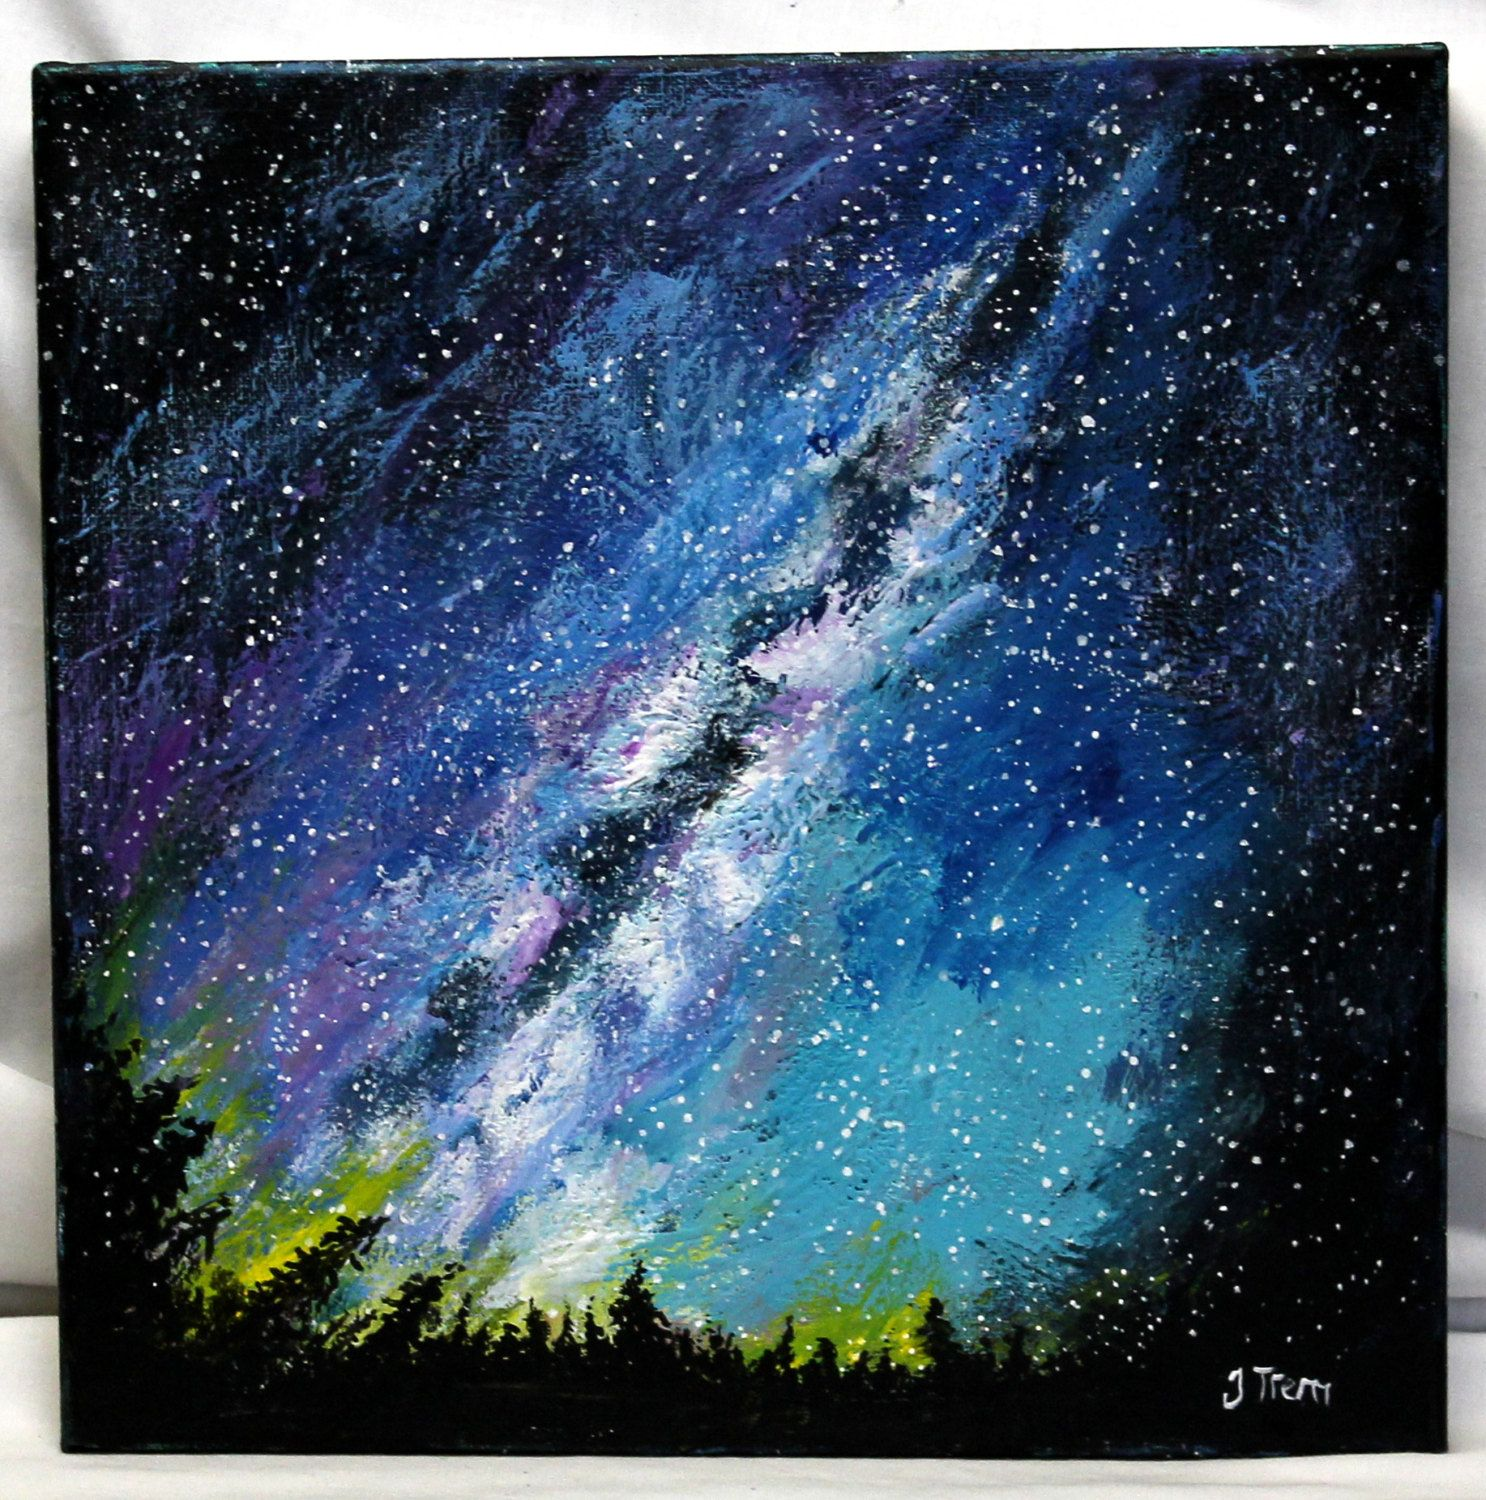 Milky Way Painting Acrylic On 12 Quot X 12 Quot Canvas Cosmic Sky Art On Canvas Original Acryliic Paintin Small Wall Decor Cute Wall Decor Gold Wall Decor